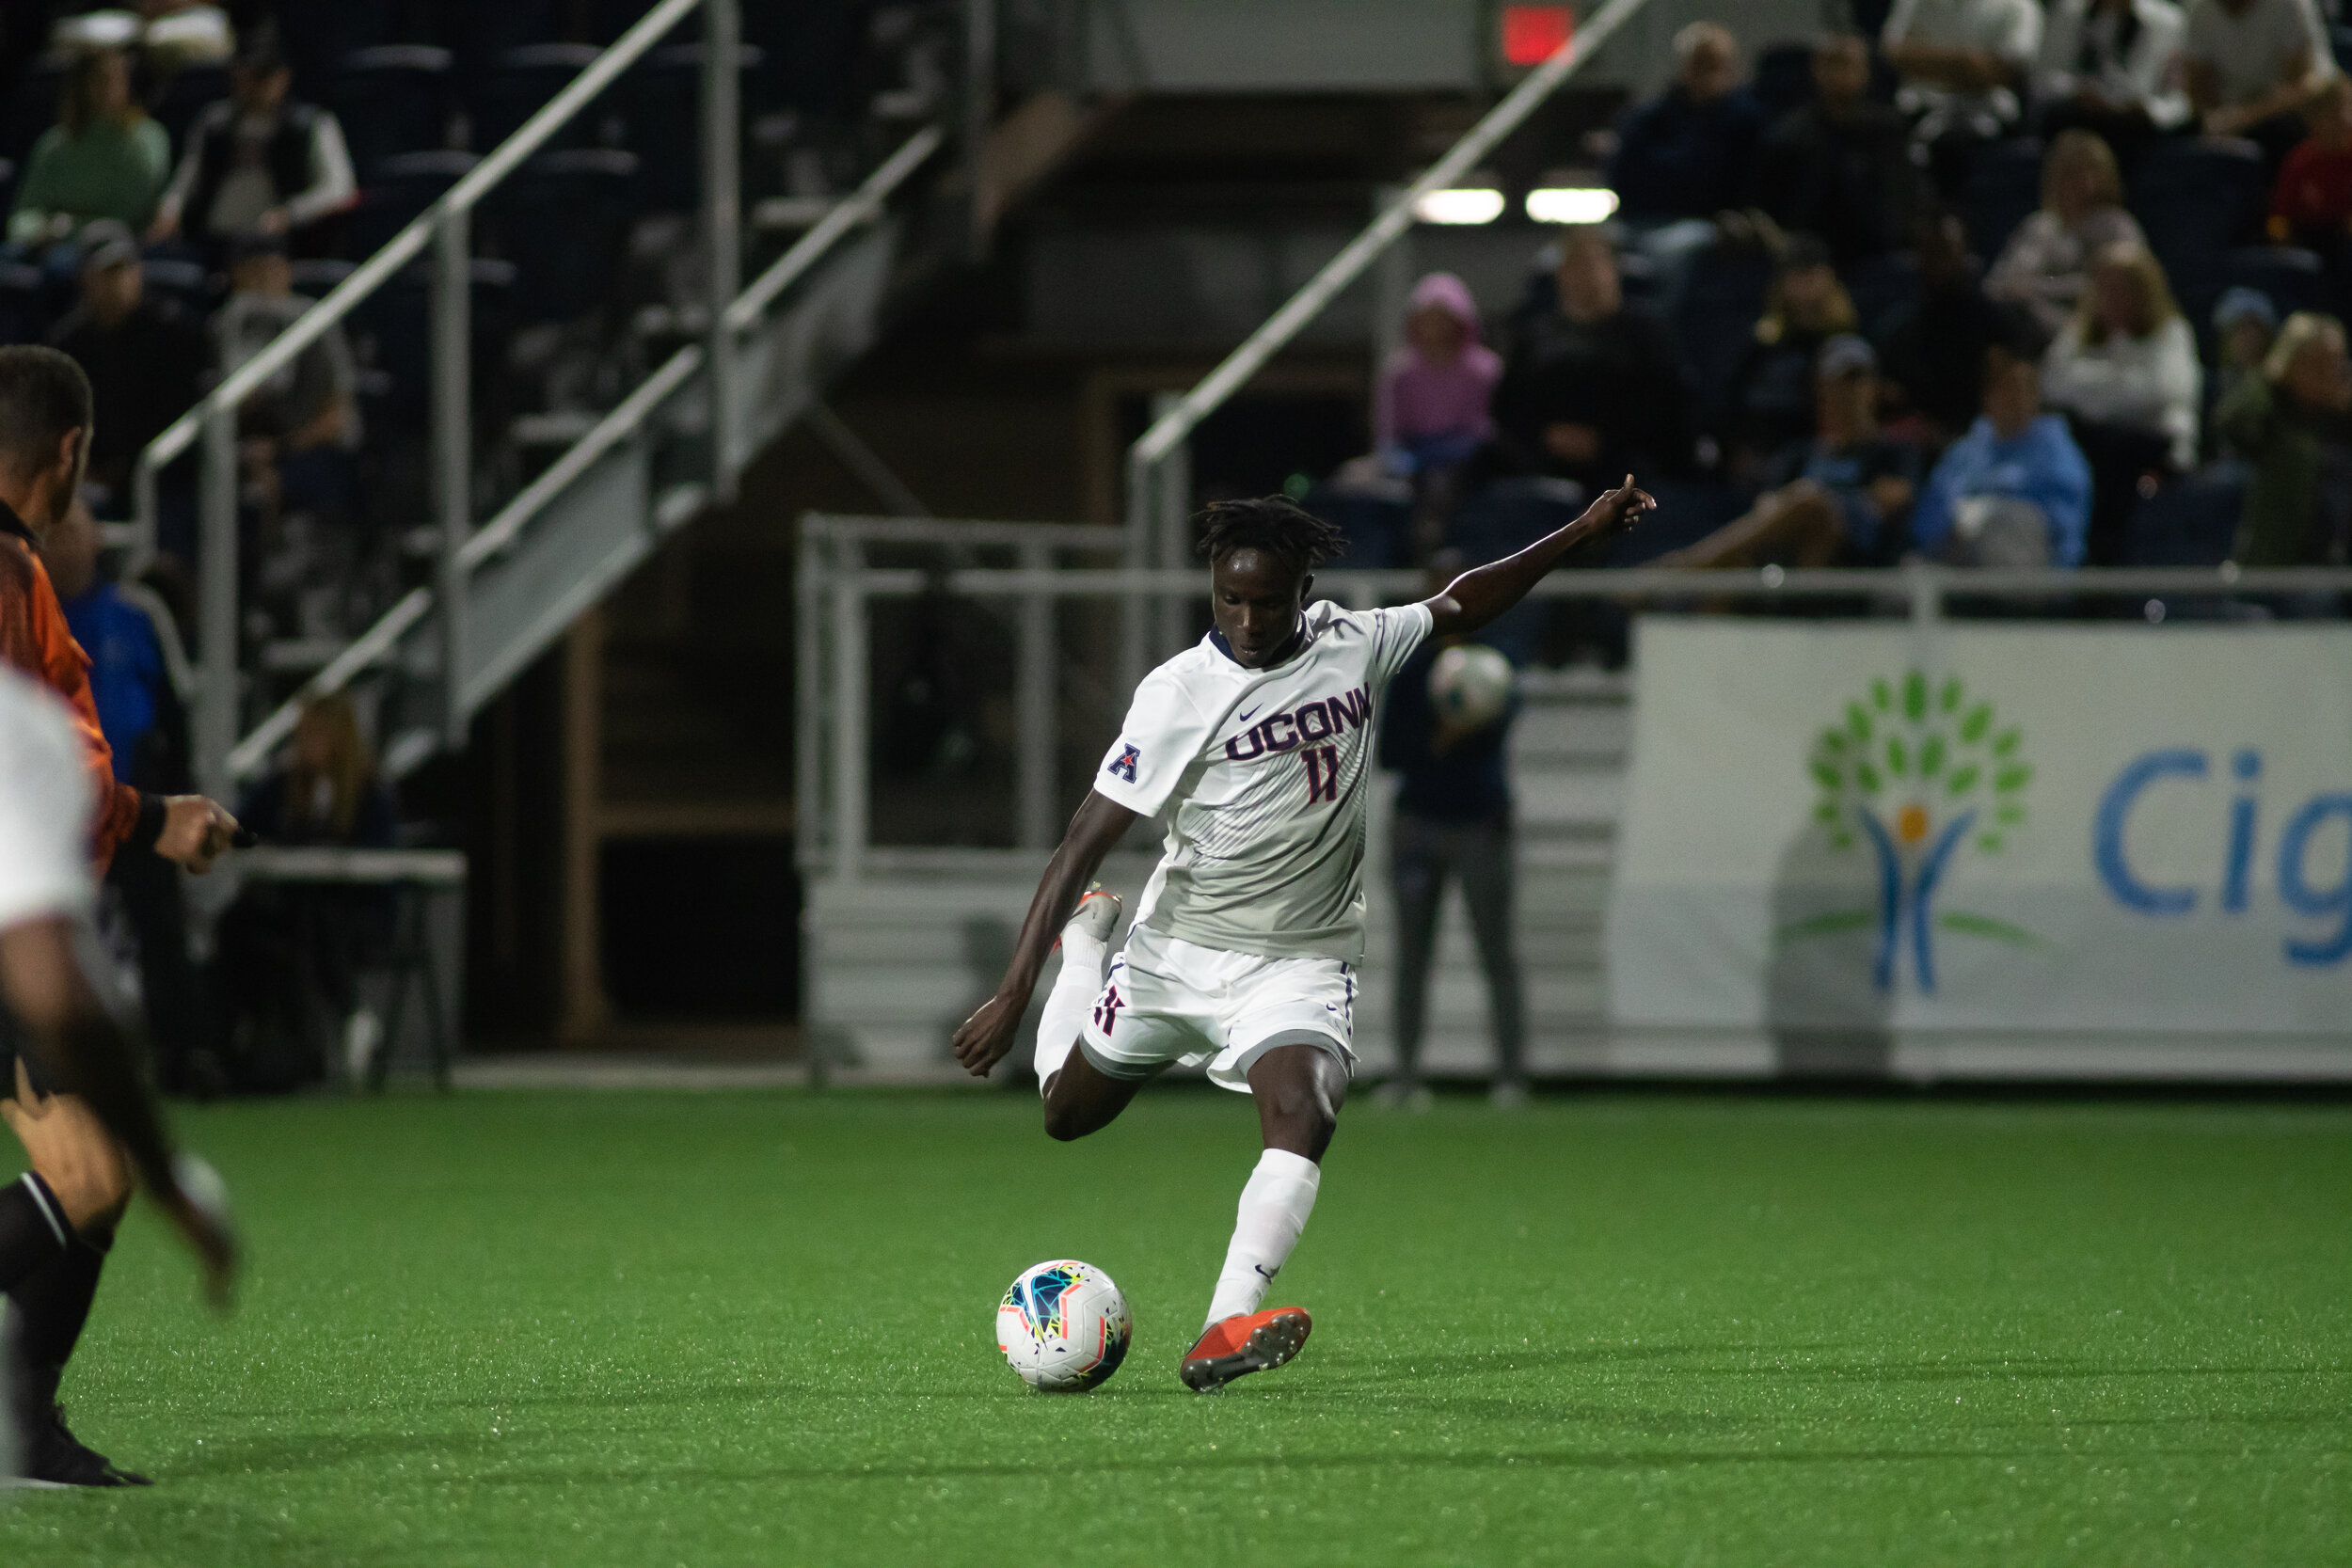 UConn Men's Soccer suffers a hard fought 2-3 defeat to Columbia on Friday. This was the first match that the Huskies played at Dillon Stadium, and senior Jordan Hall (No. 9) scored his eighth goal of the season.  Photo by Kevin Lindstrom/The Daily Campus